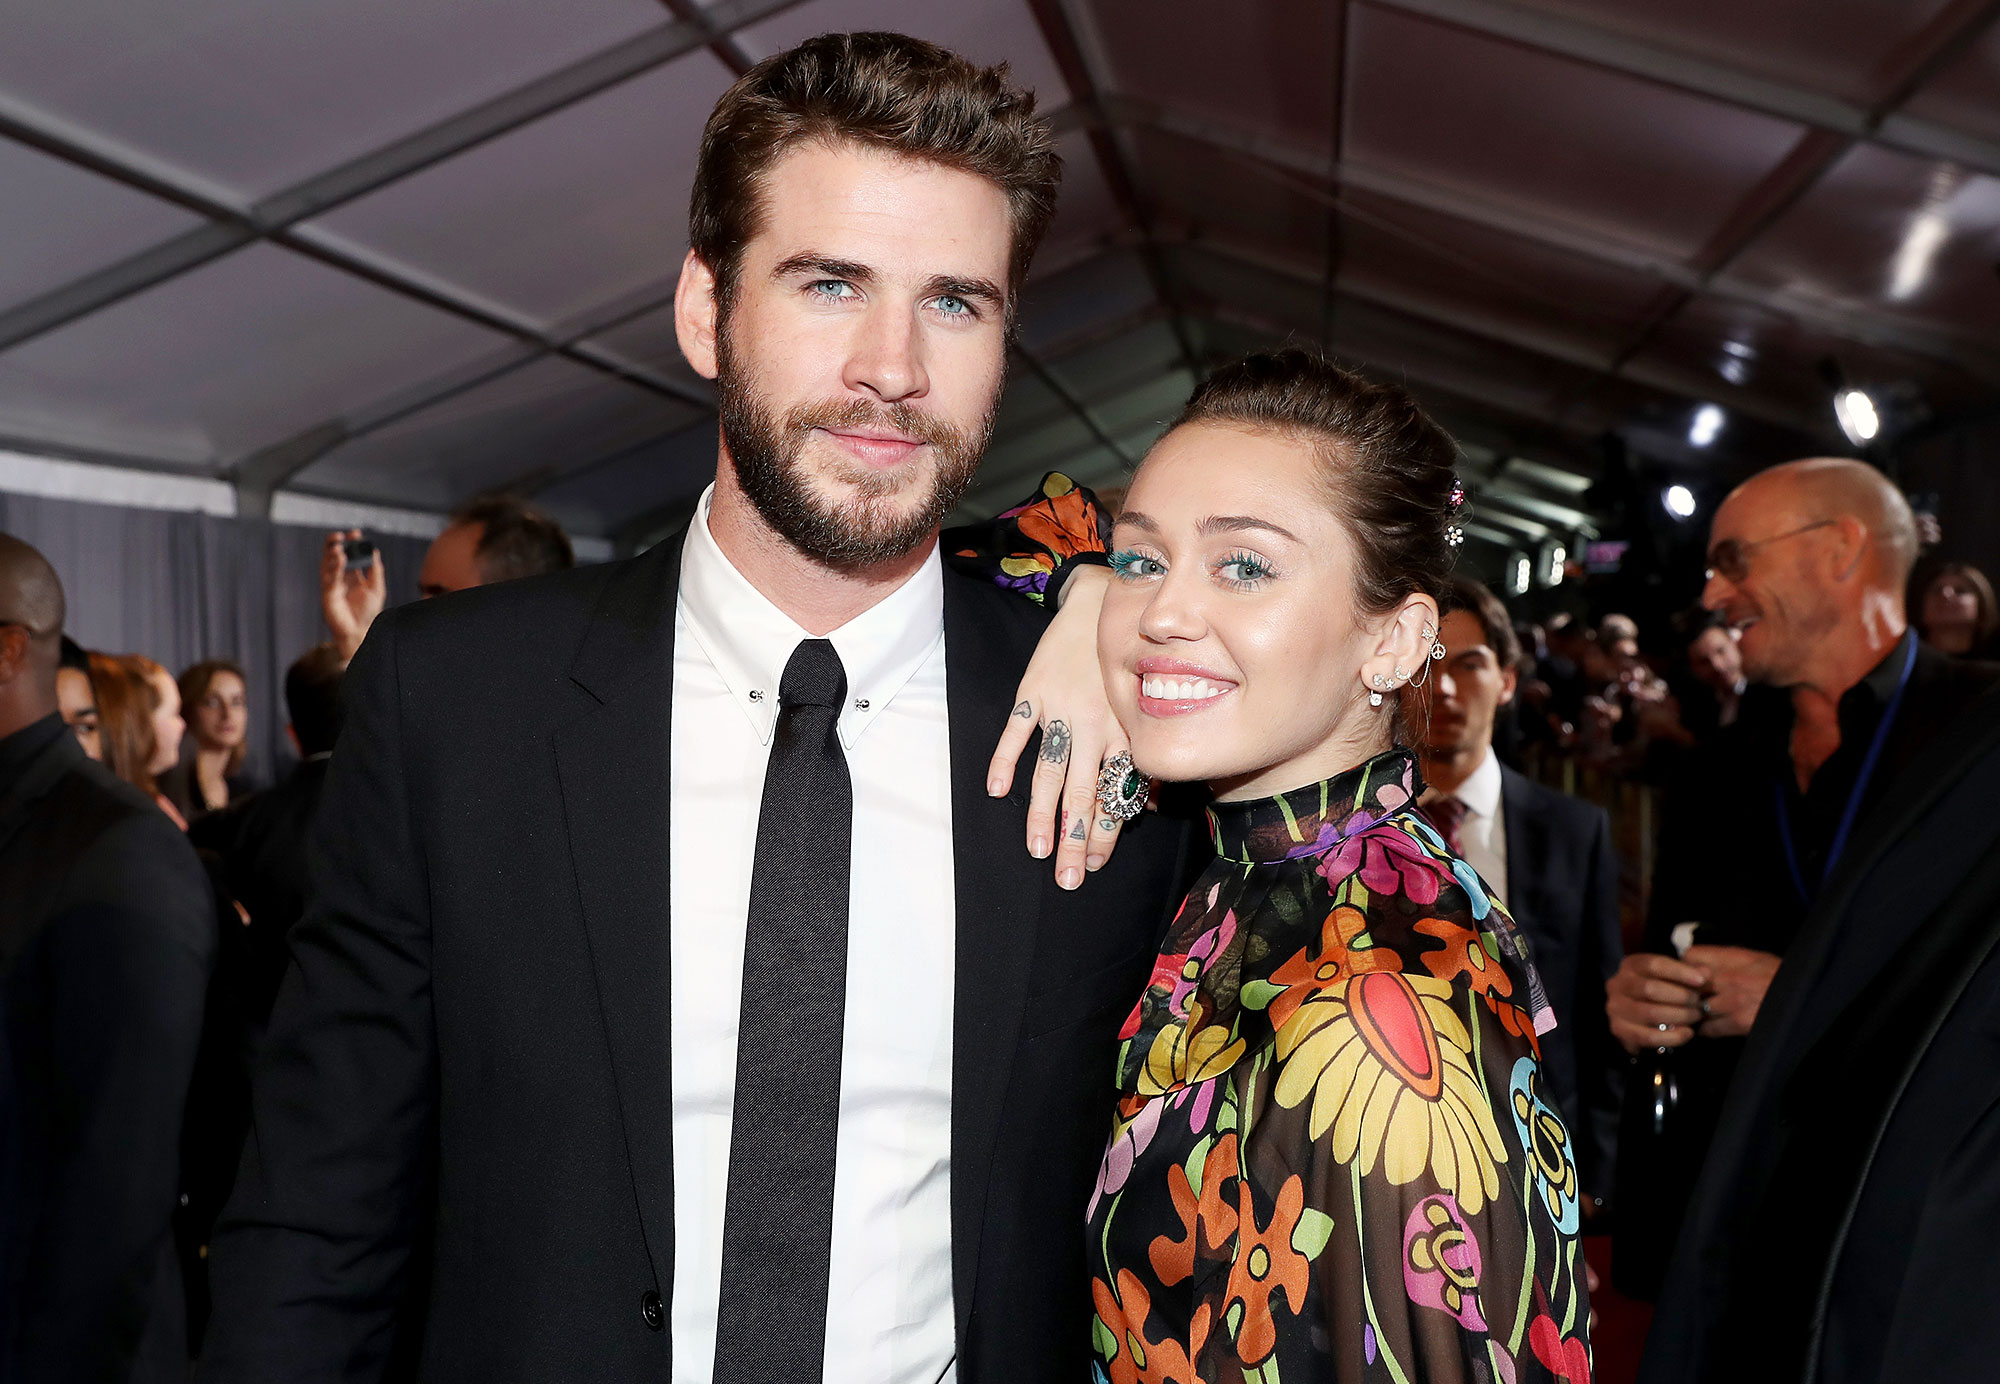 Miley Cyrus Shares NSFW Valentine's Day Tweet for Liam Hemsworth